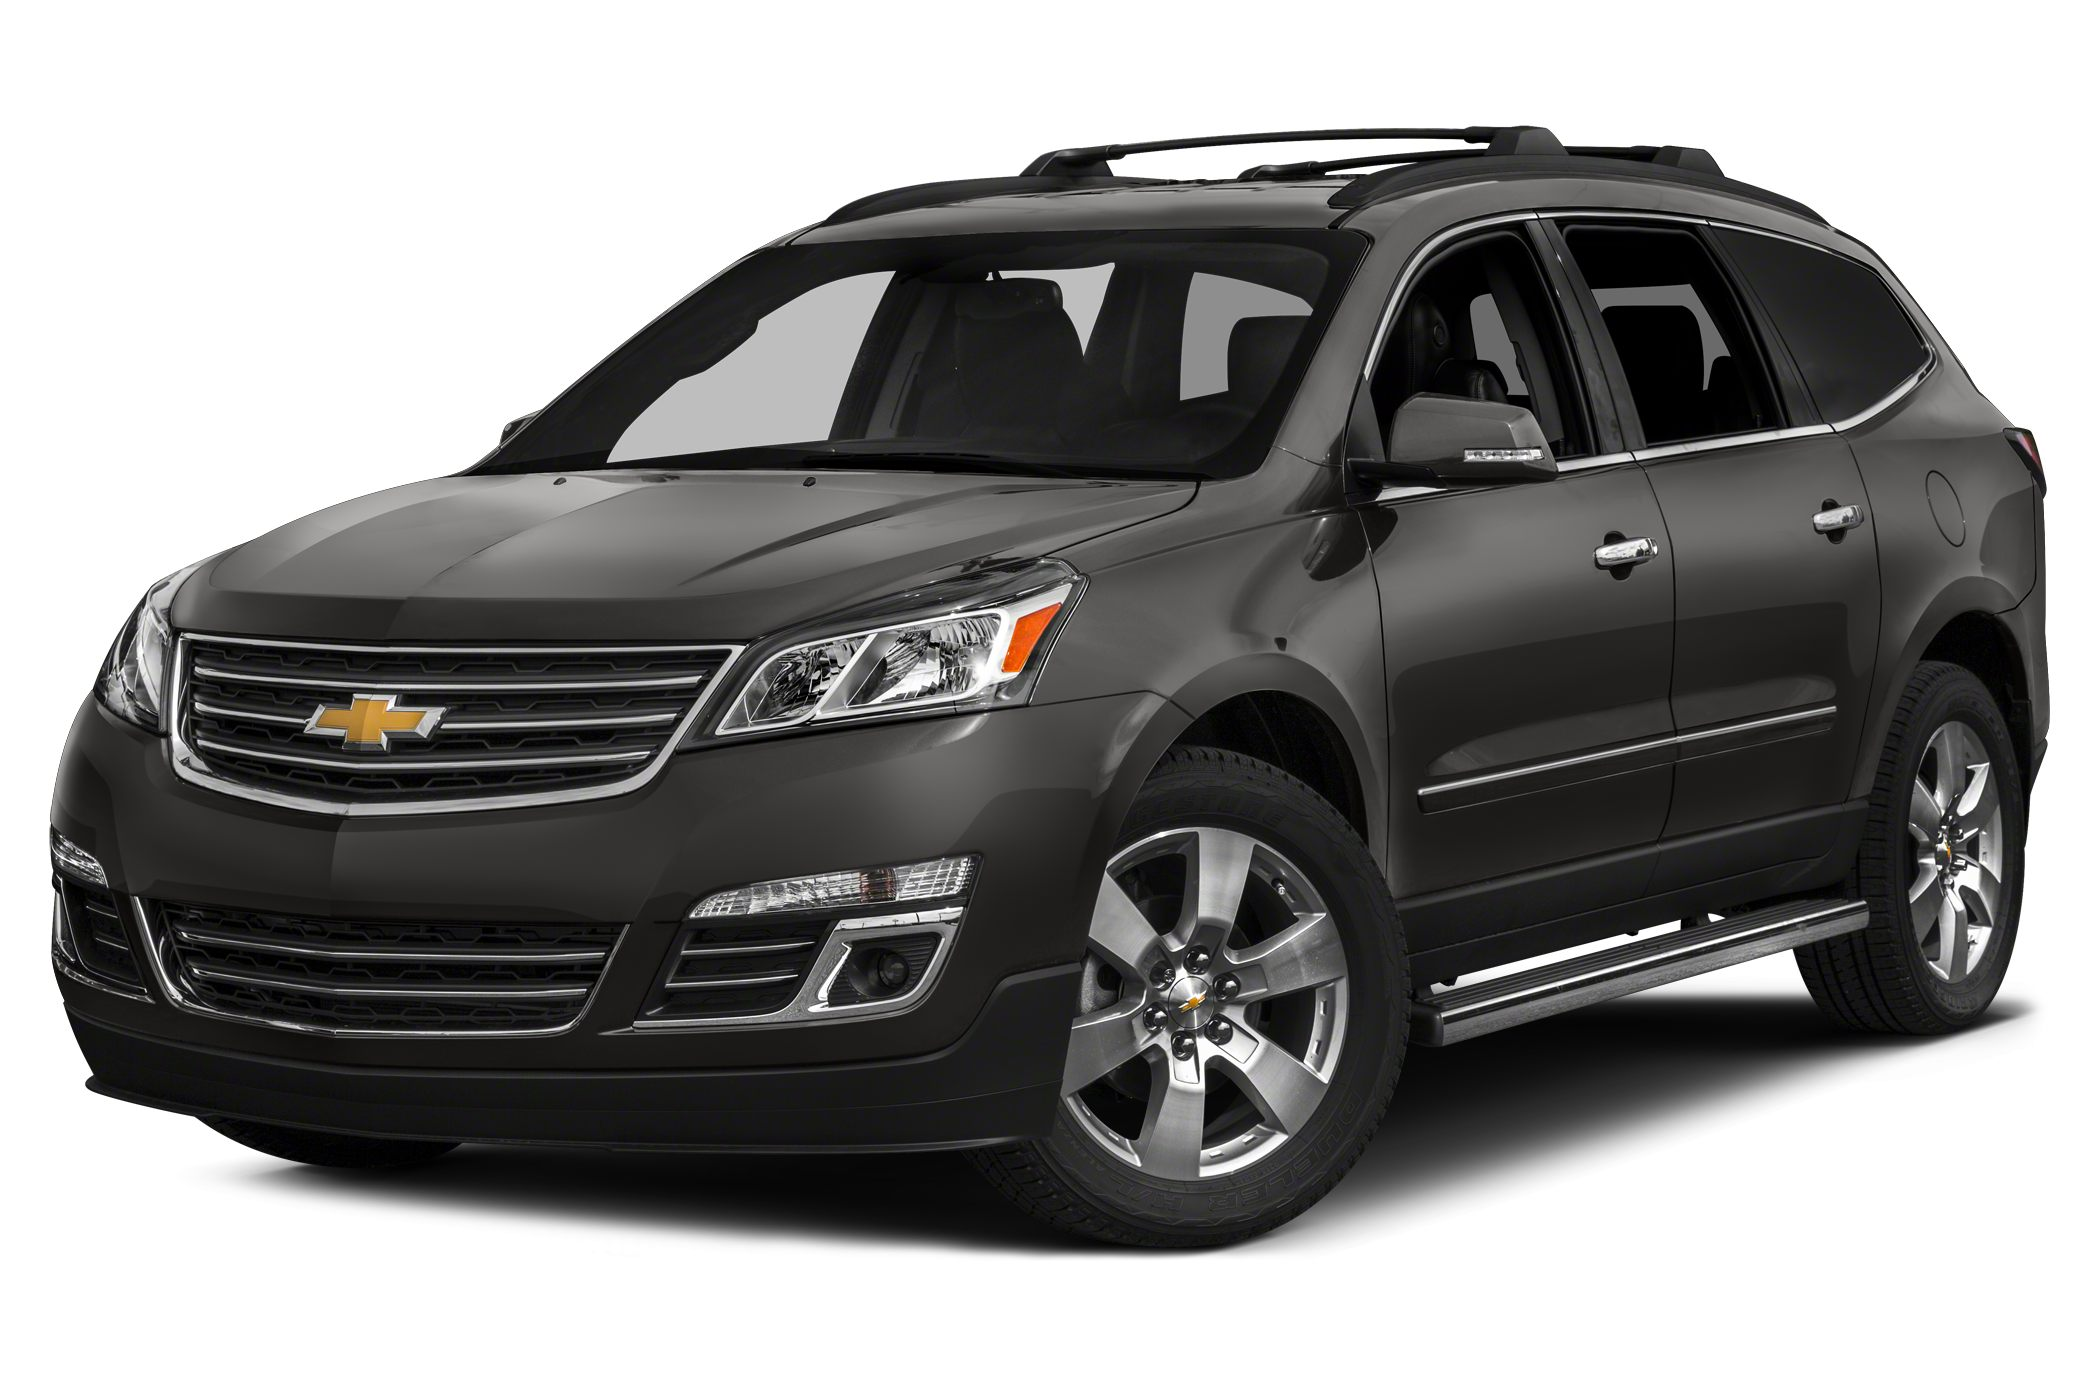 gm tells owners not to use suv wipers due to fire risk. Black Bedroom Furniture Sets. Home Design Ideas